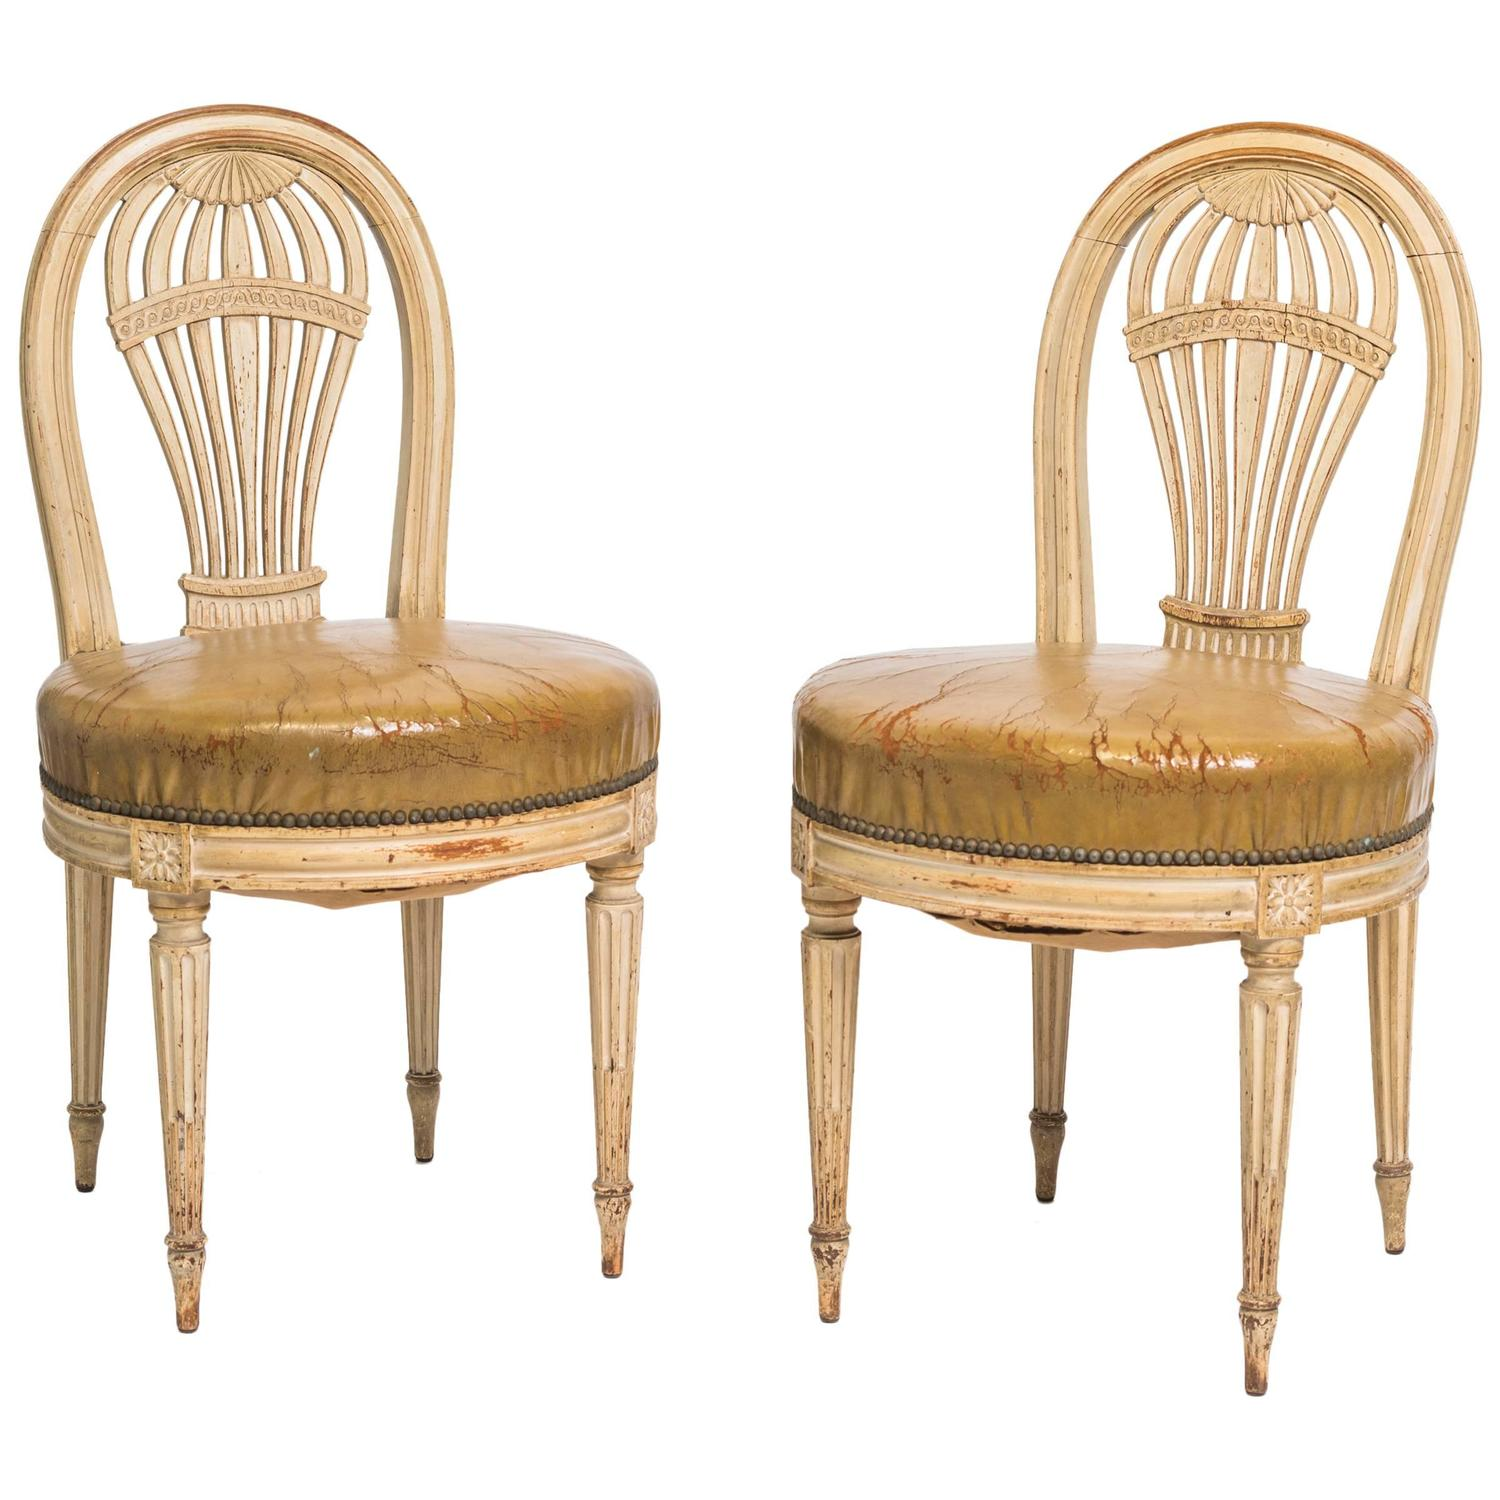 Etonnant Pair Of 1920s French Hot Air Balloon Side Chairs For Sale At 1stdibs